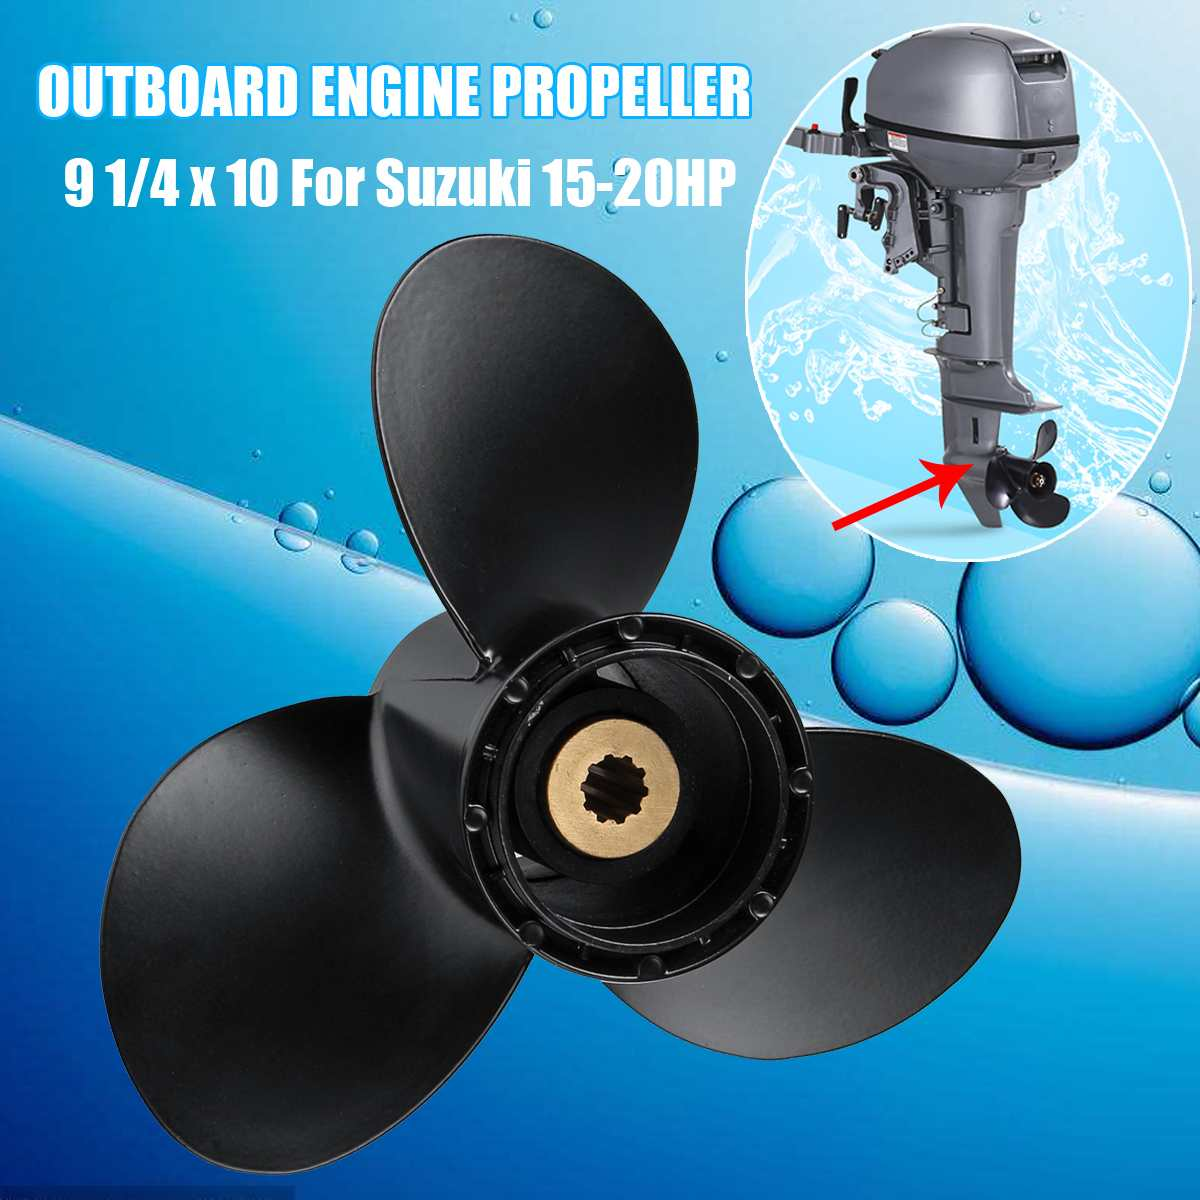 Audew Boat Propeller 58100-93733-019 For Suzuki 15-20HP 9 1/4 X 10 Outboard Engine Propeller Aluminum Alloy 3 Blades